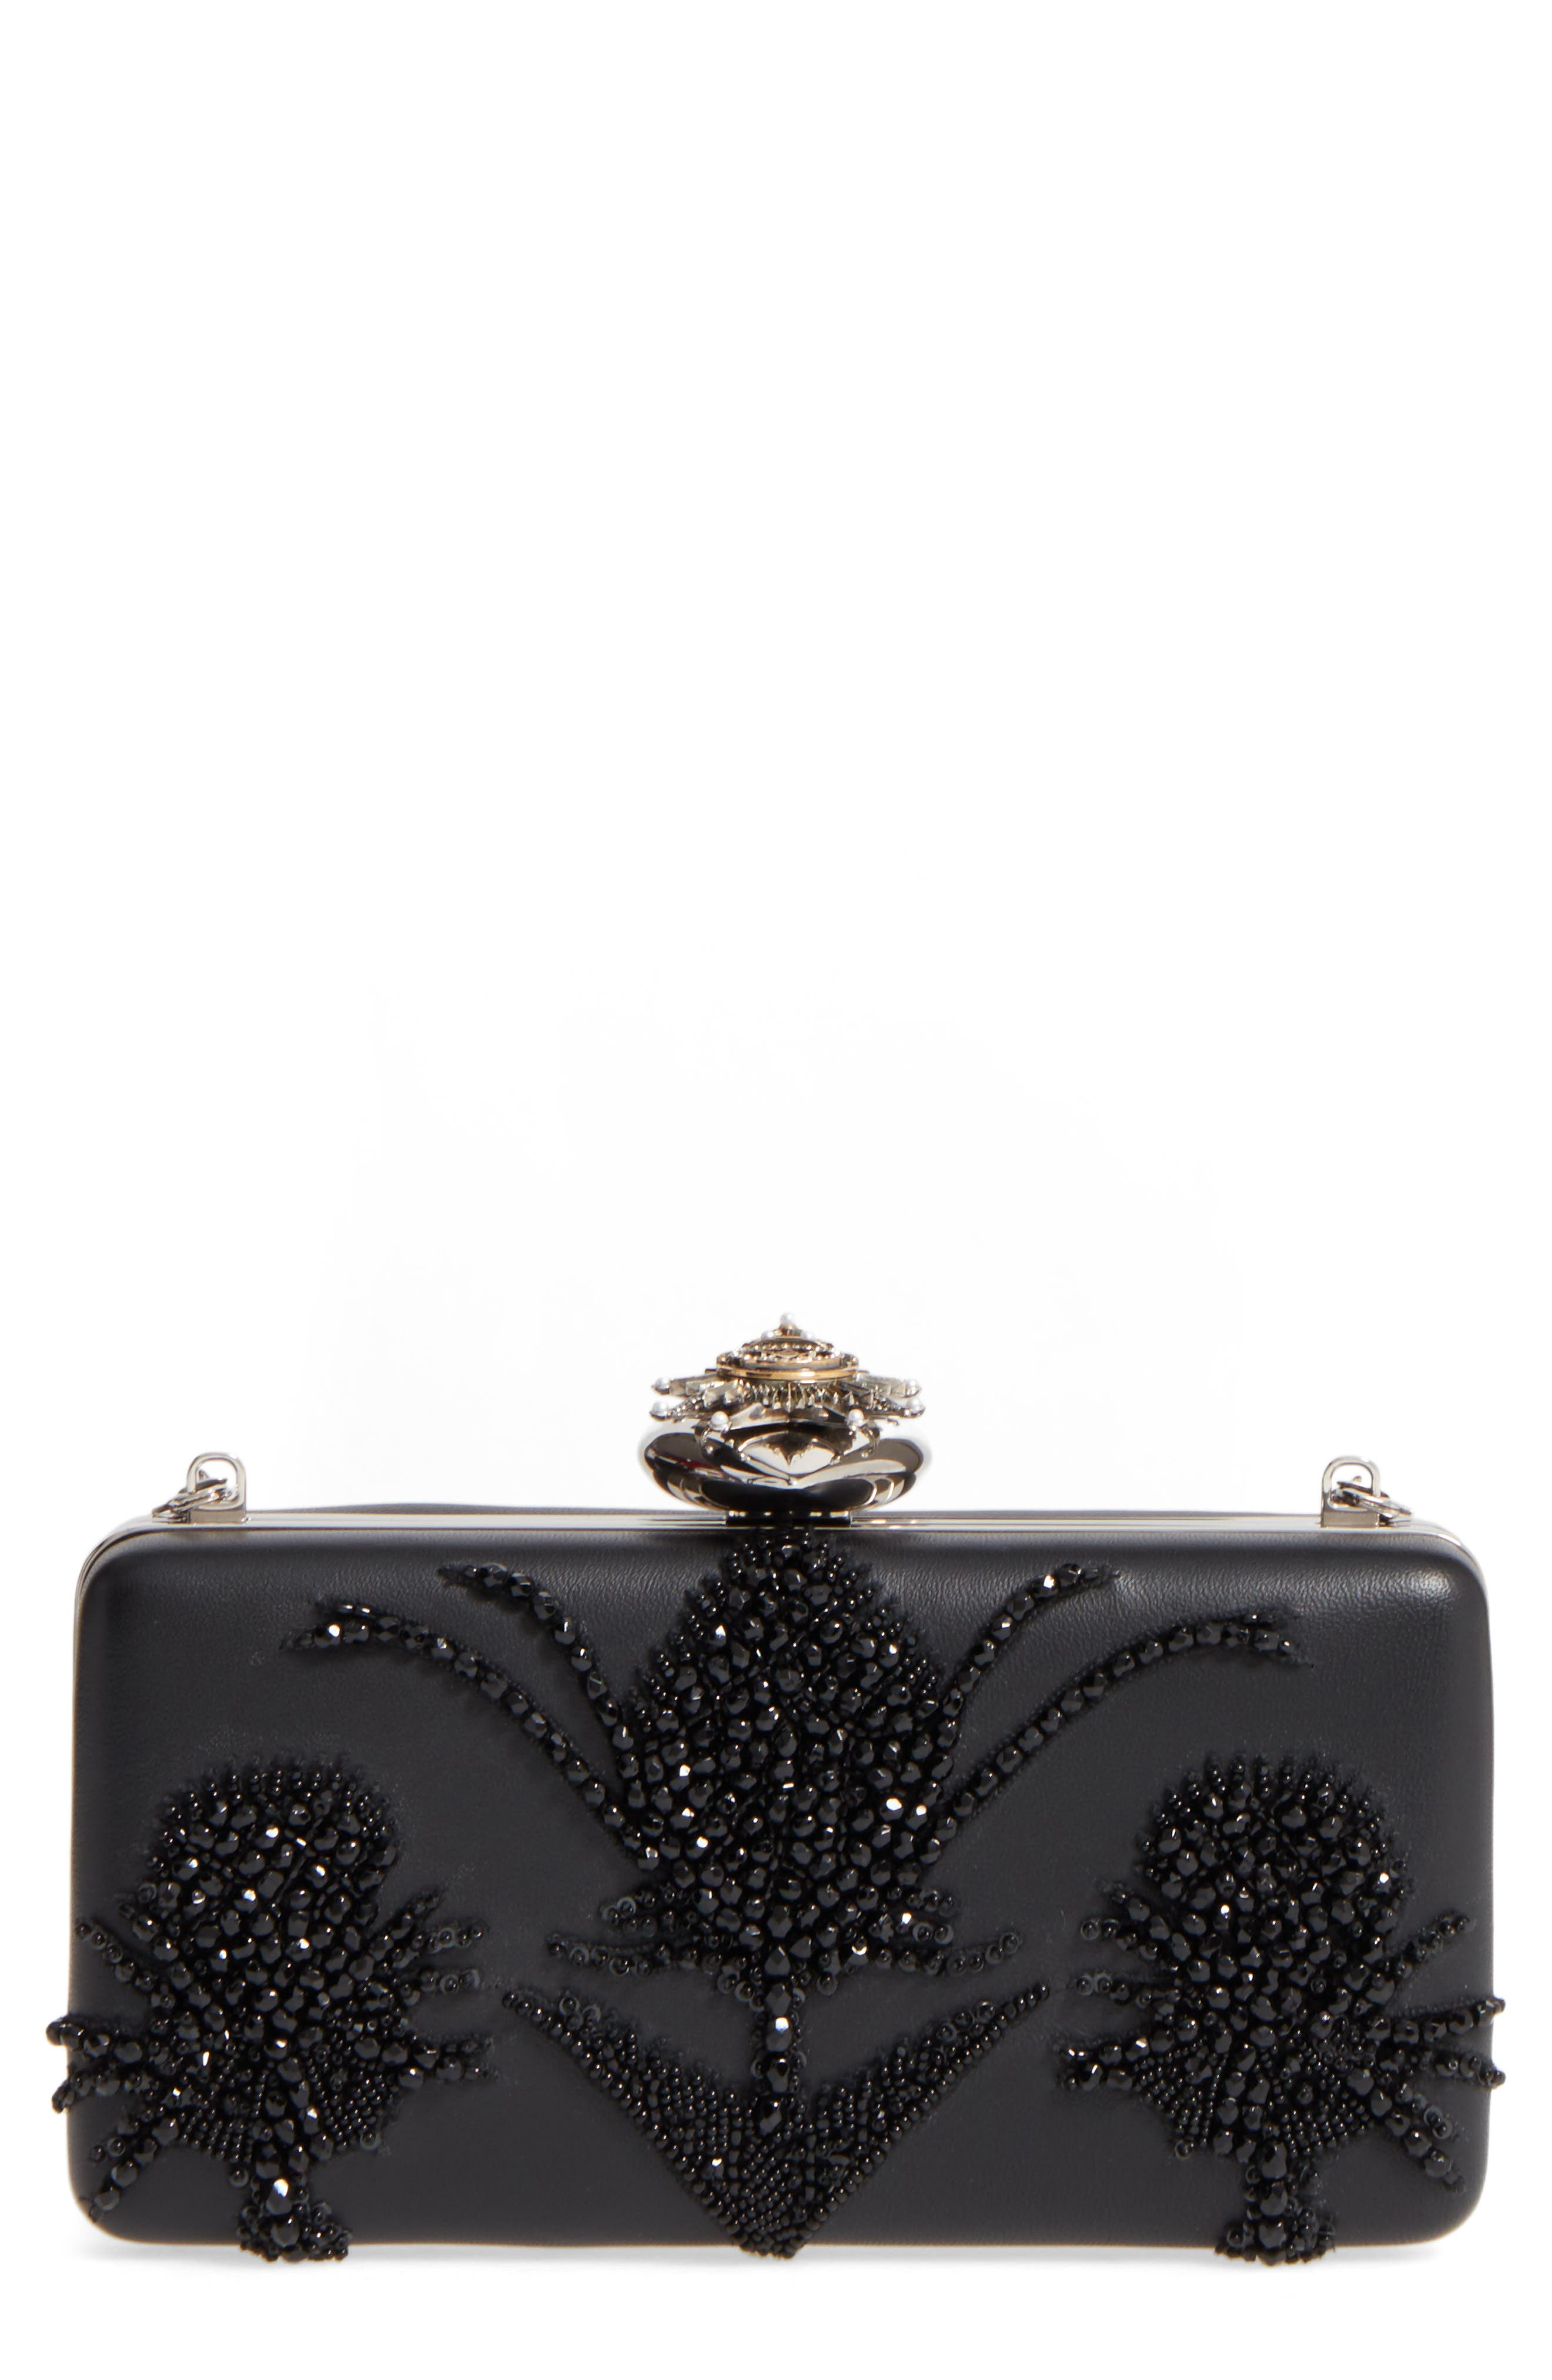 Alternate Image 1 Selected - Alexander McQueen Embellished Nappa Leather Clutch